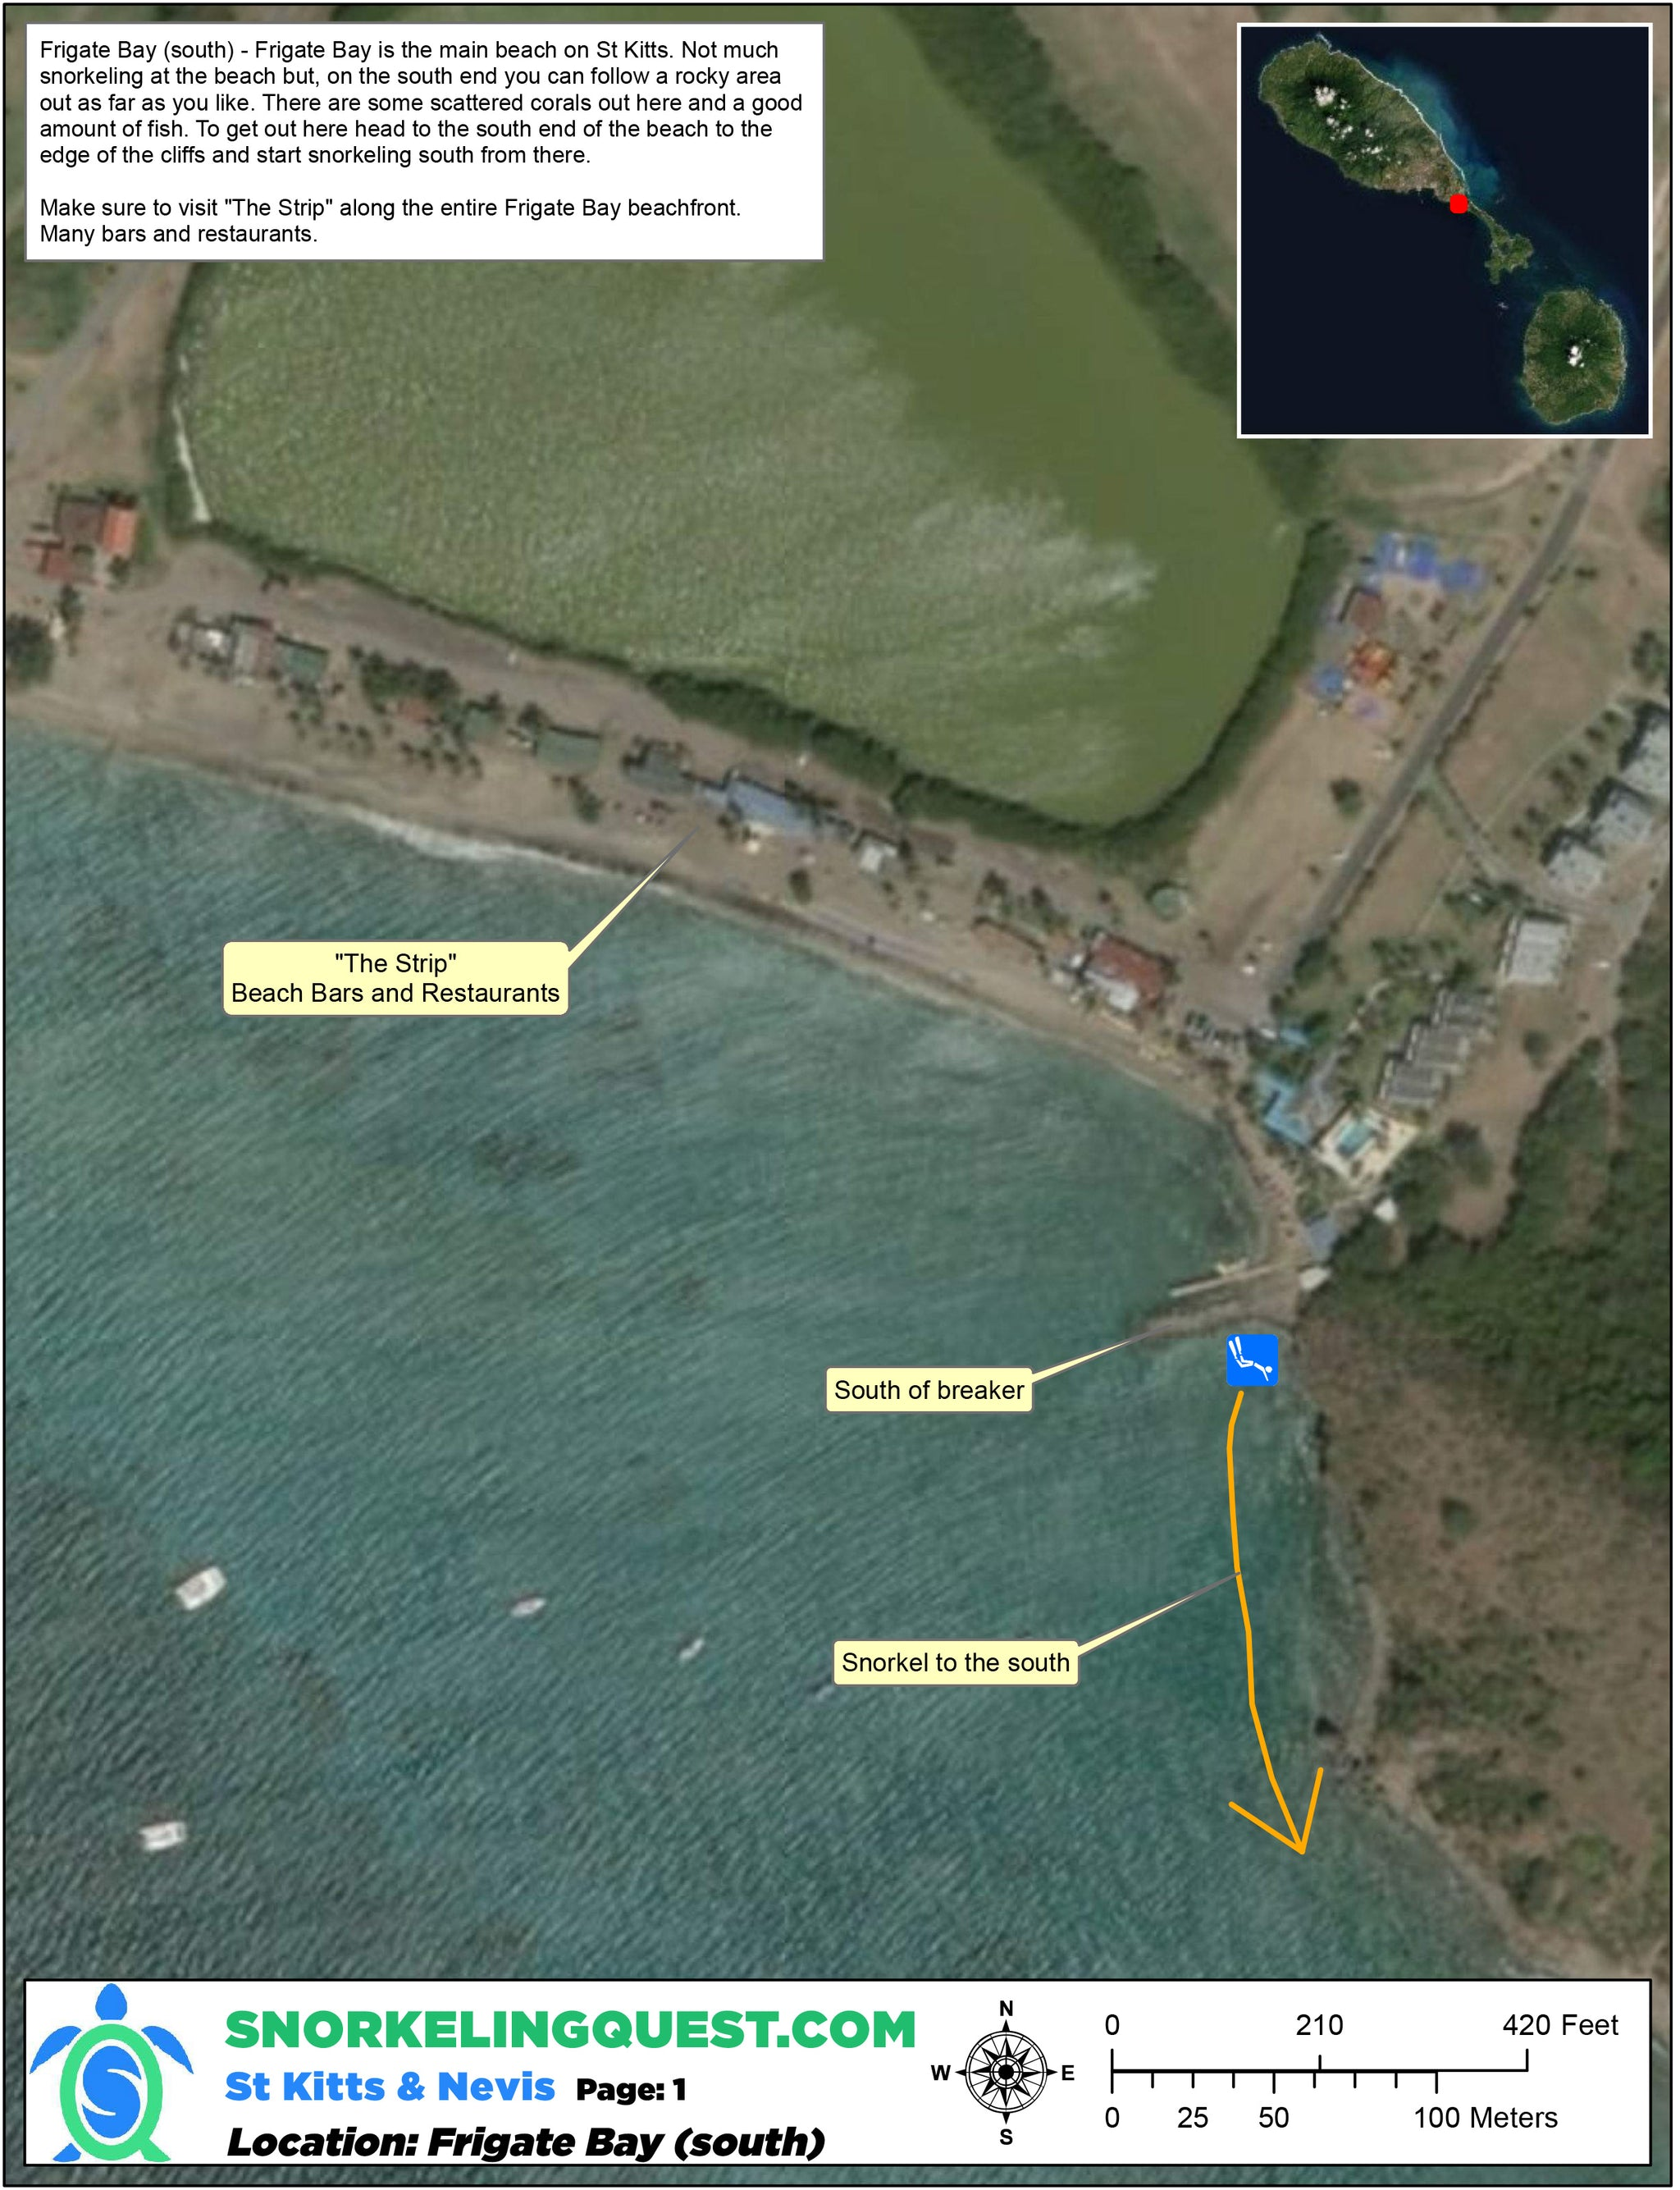 St Kitts and Nevis Snorkeling Map